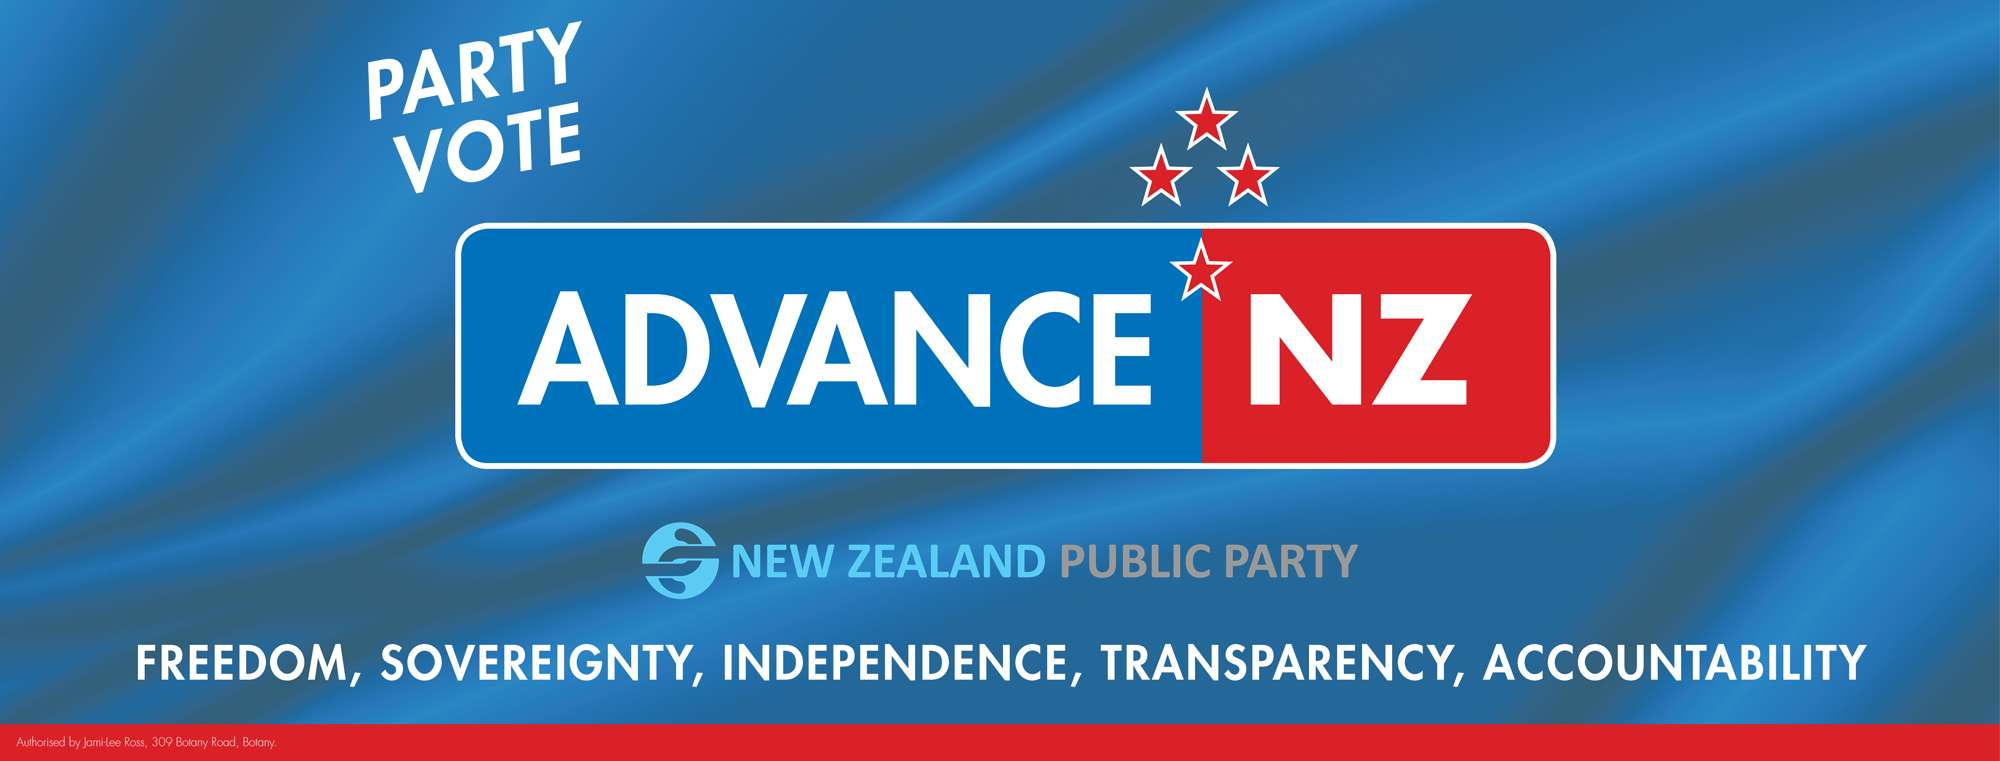 New Zealand Public Party